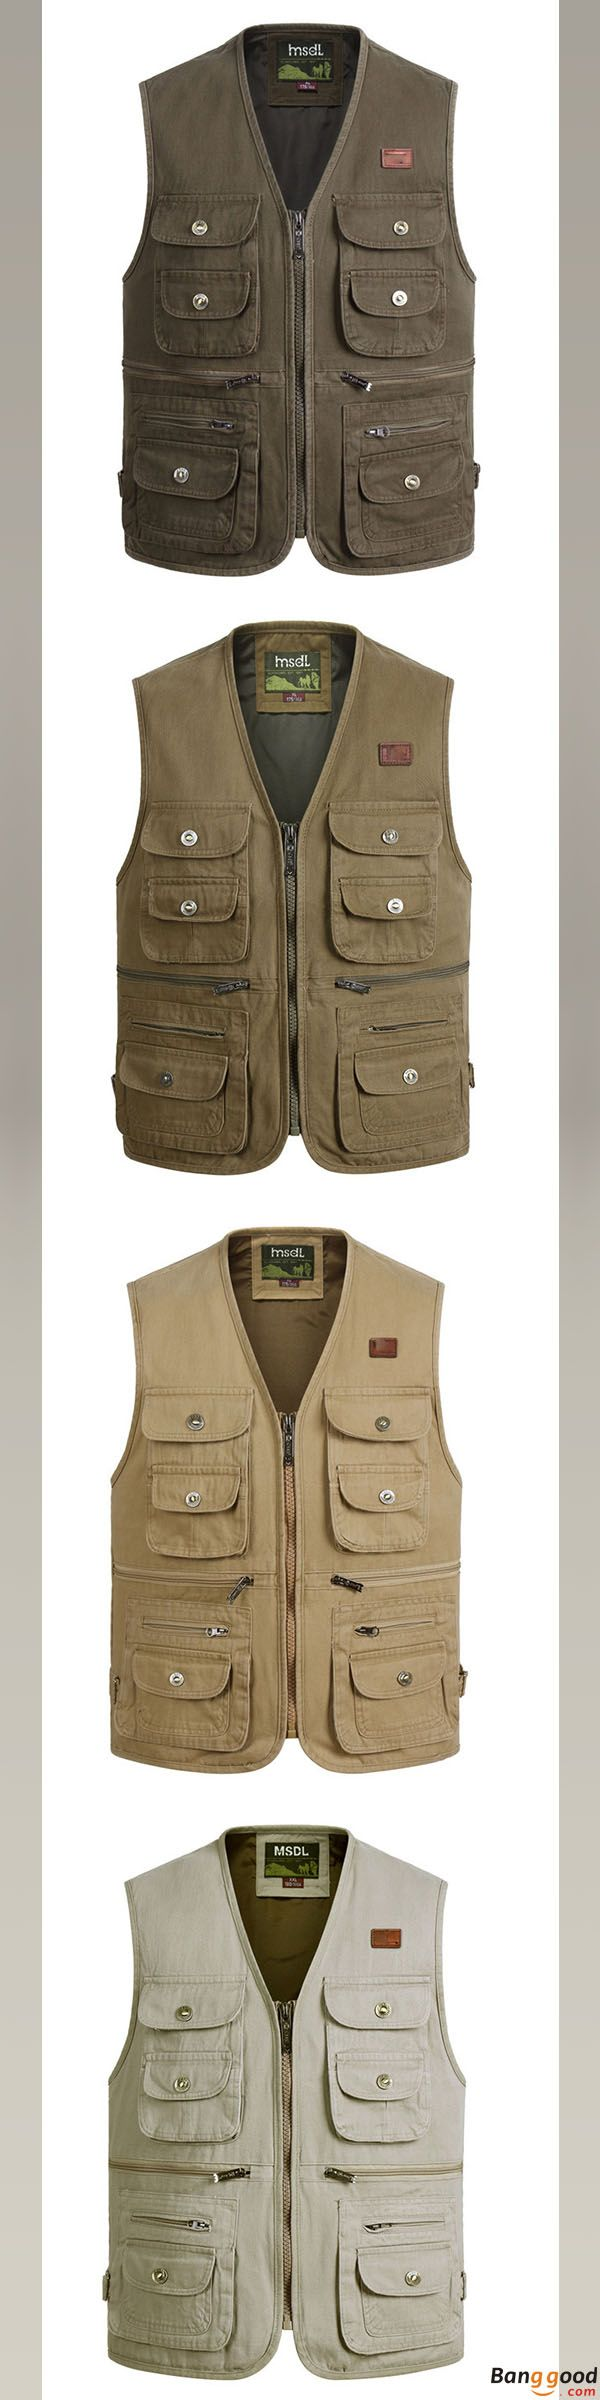 US$35.82 + Free Shipping. Outdoor Vest, Mens Vest, Photographer Vest, Fishing Vest, Multi-pocket Vest, Tactical Vest, Cotton Sleeveless Vest. Color: Olive, Army Yellow, Khaki, Beige US$ + Free Shipping. US Size: From S to 2XL. Get One and Prepare for the Winter.